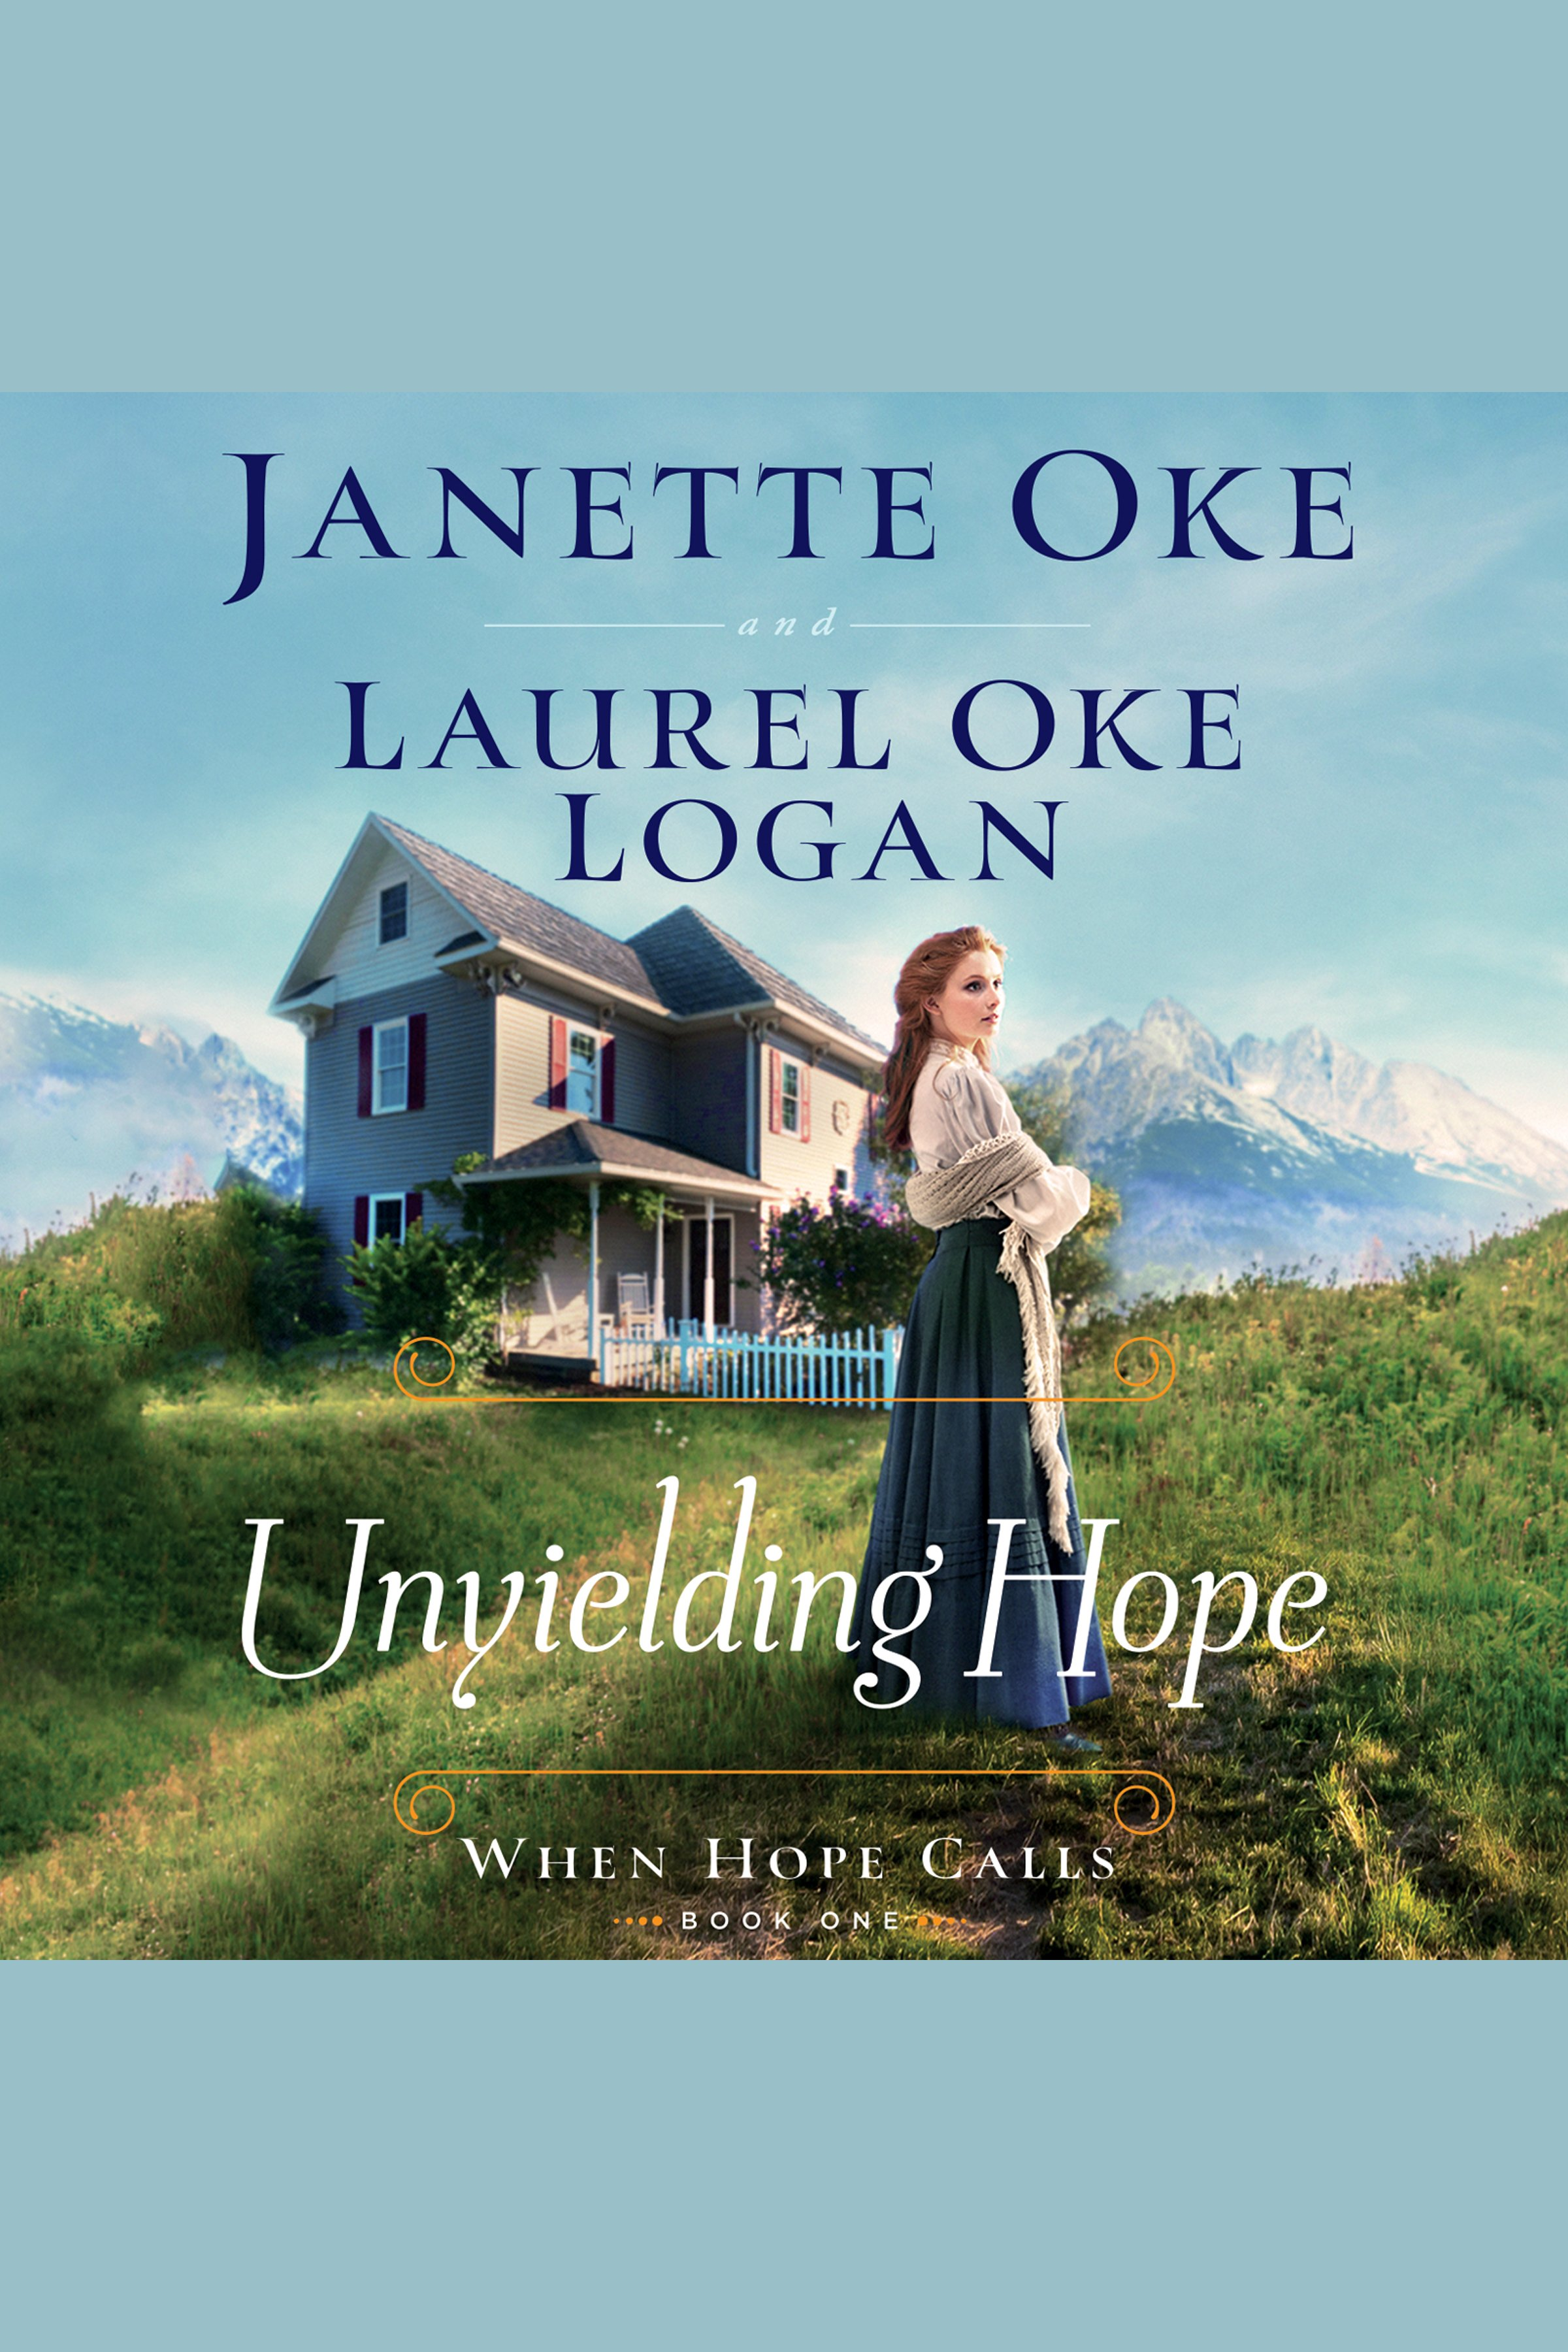 Cover Image of Unyielding Hope